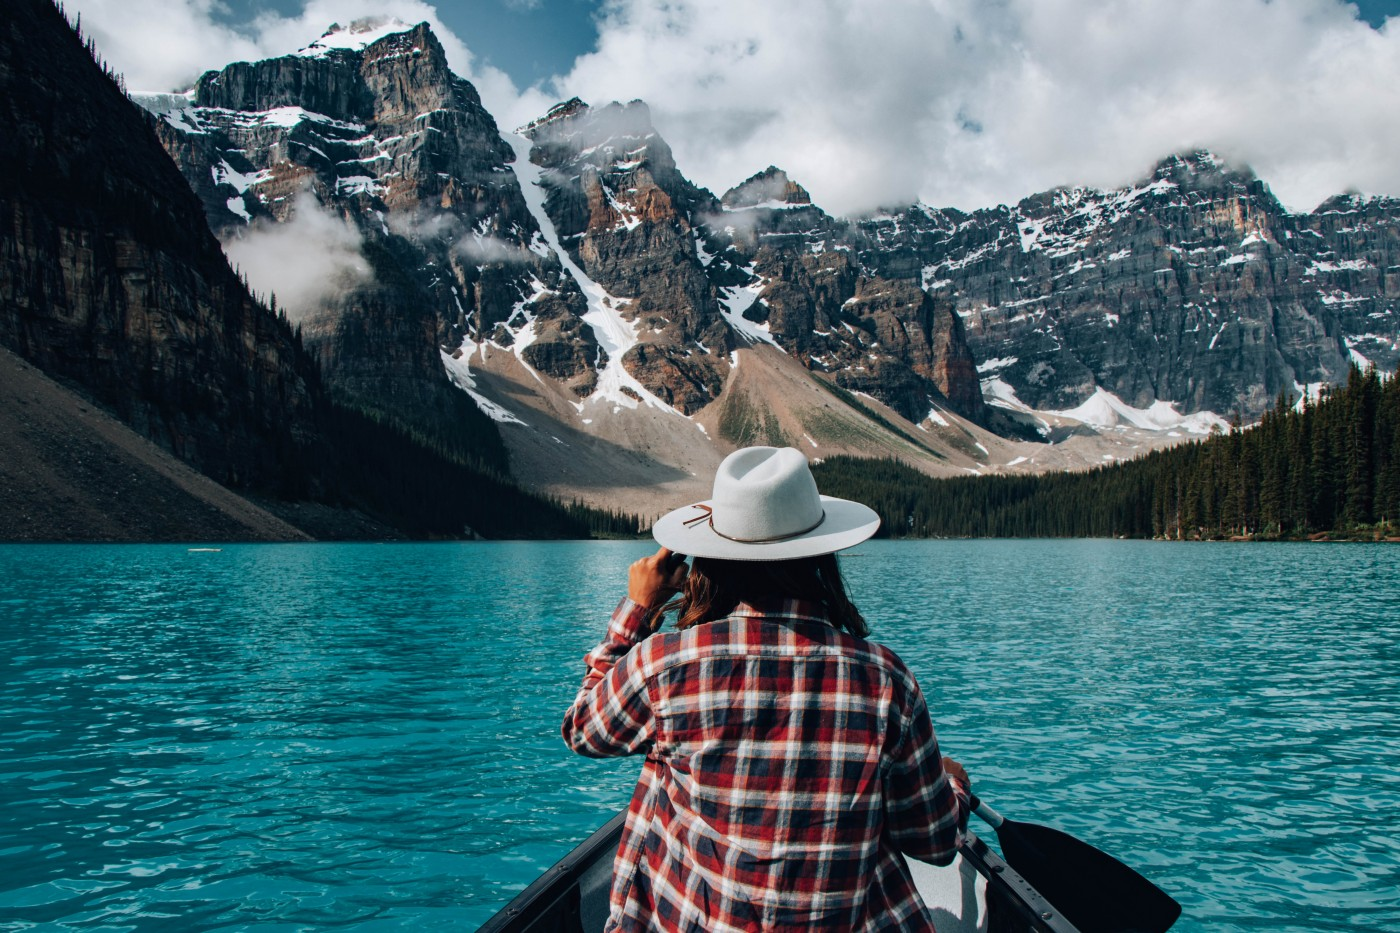 Moraine Lake Canoeing   Top 10 Photography Spots in Banff National Park